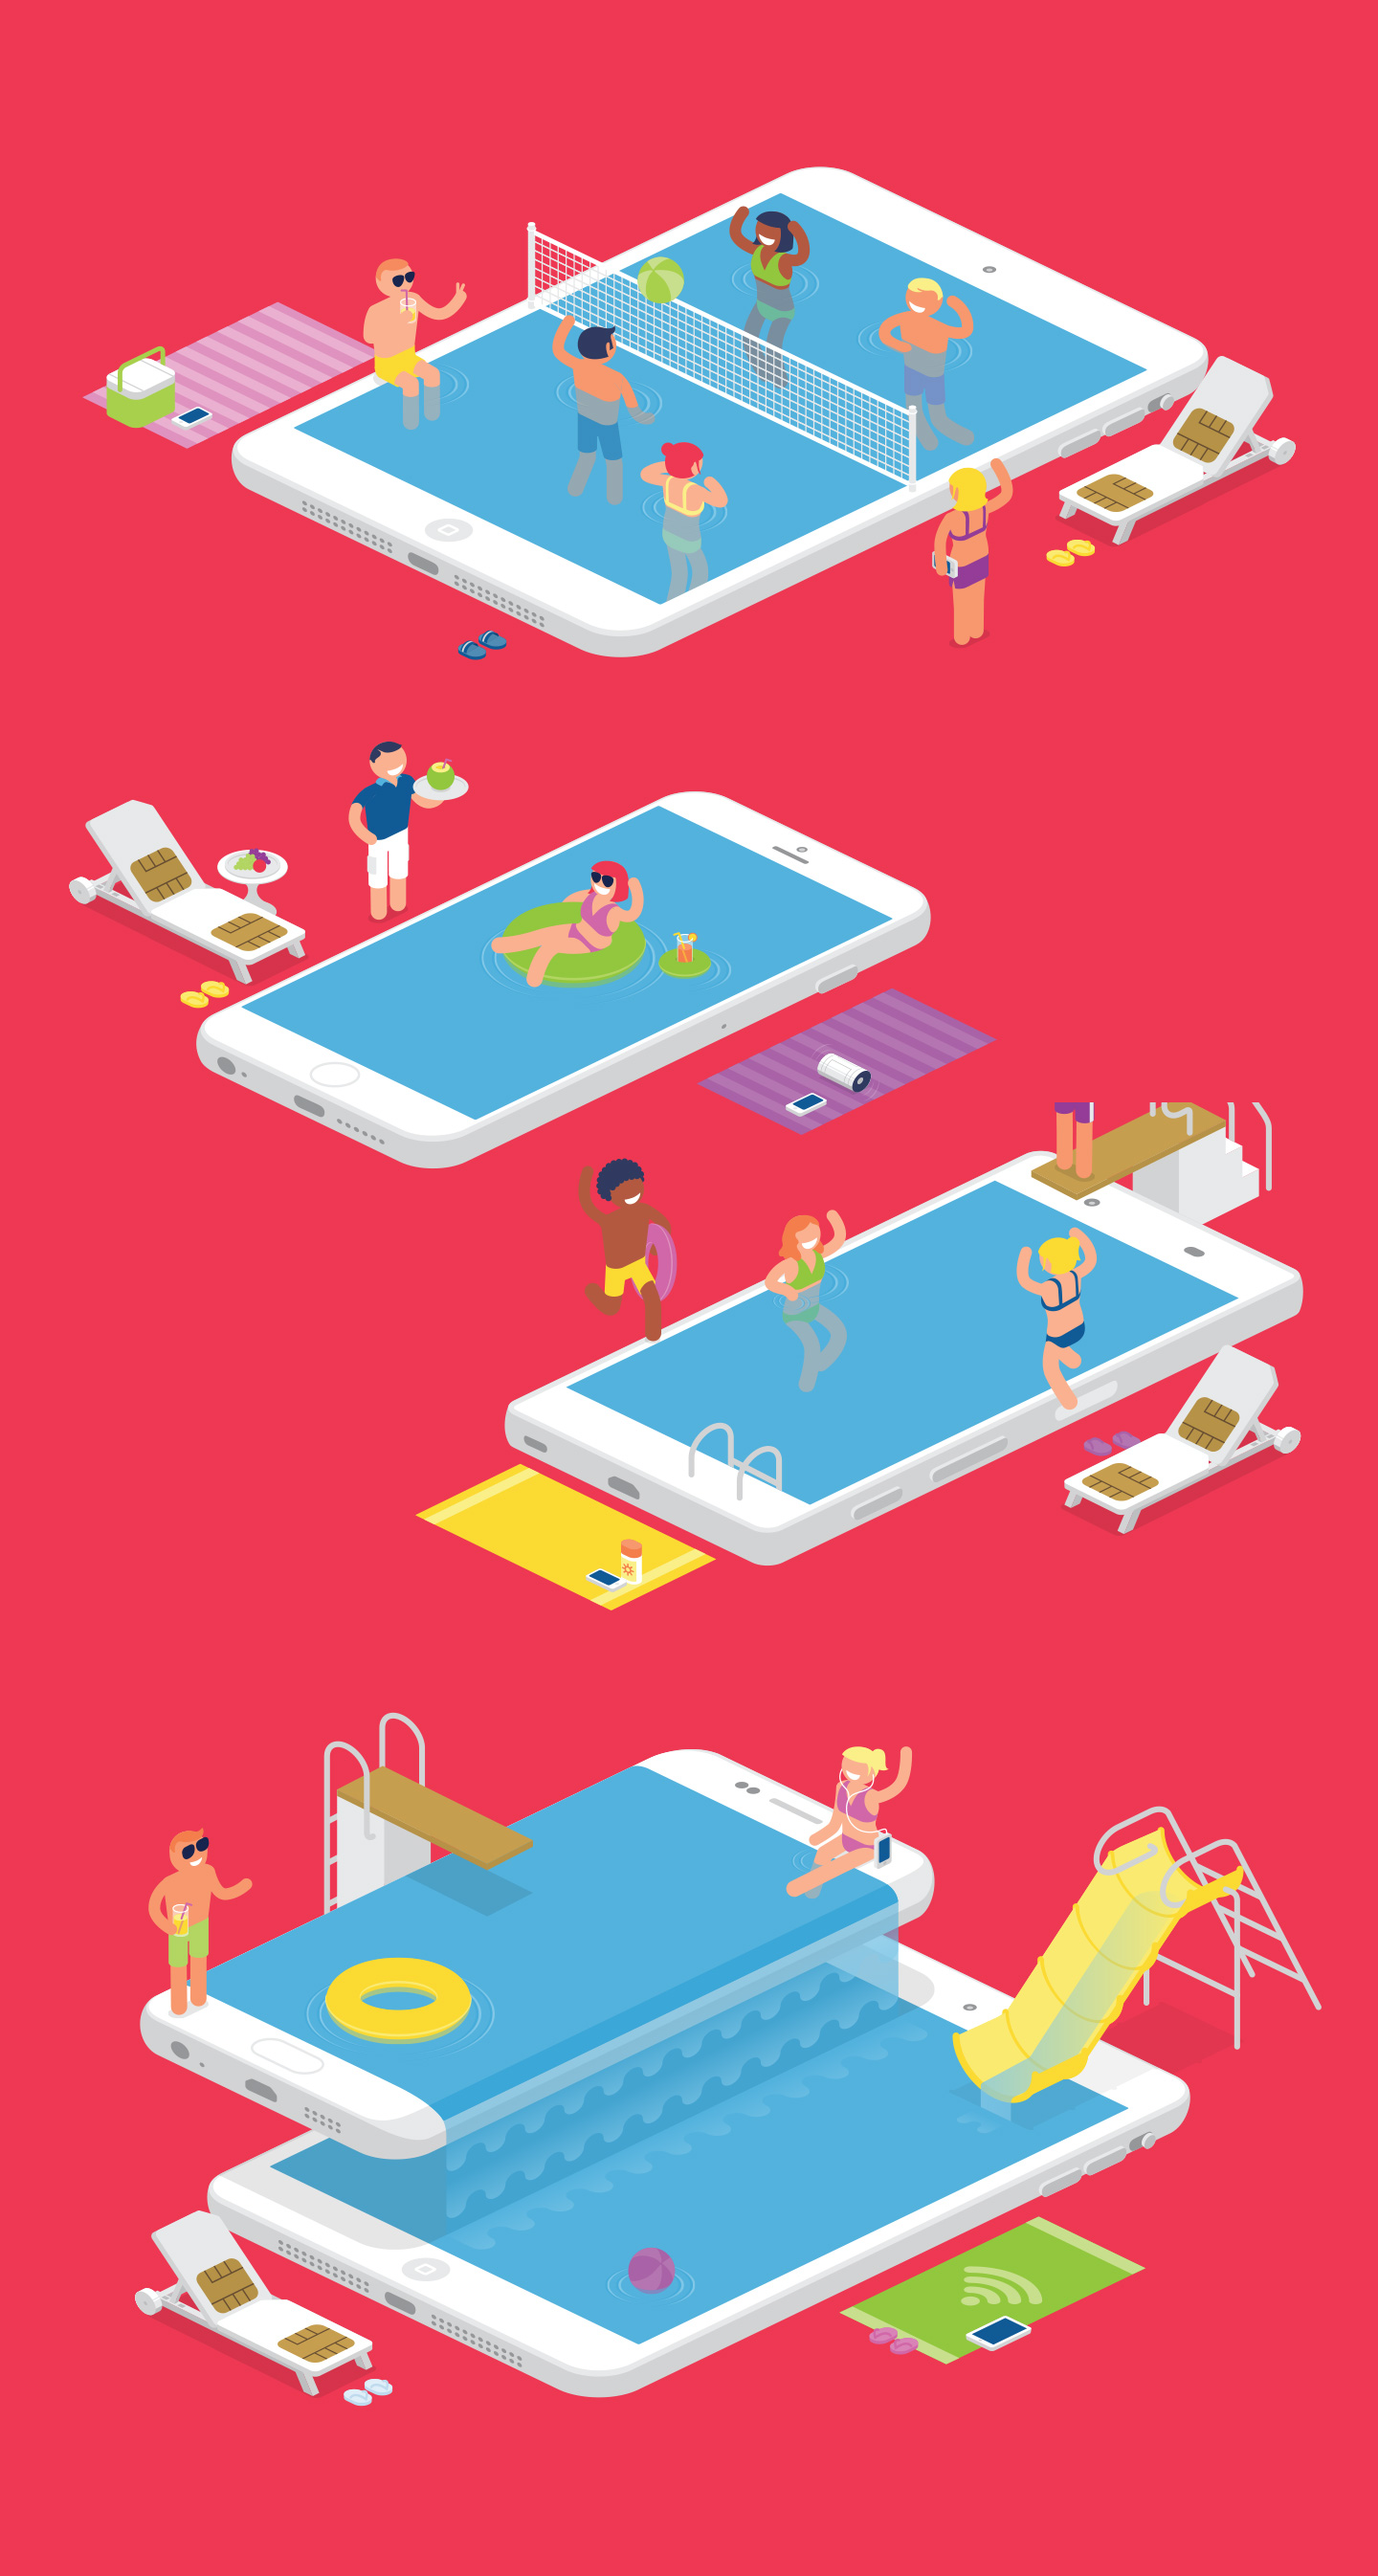 illustration_andre_levy_zhion_vector_isometric_perspective_campaign_o2_ogilvy_proposal_swimming_pool_party_friends_summer_cheerful_mobile_ipad_iphone_samsung_galaxy_friends.jpg